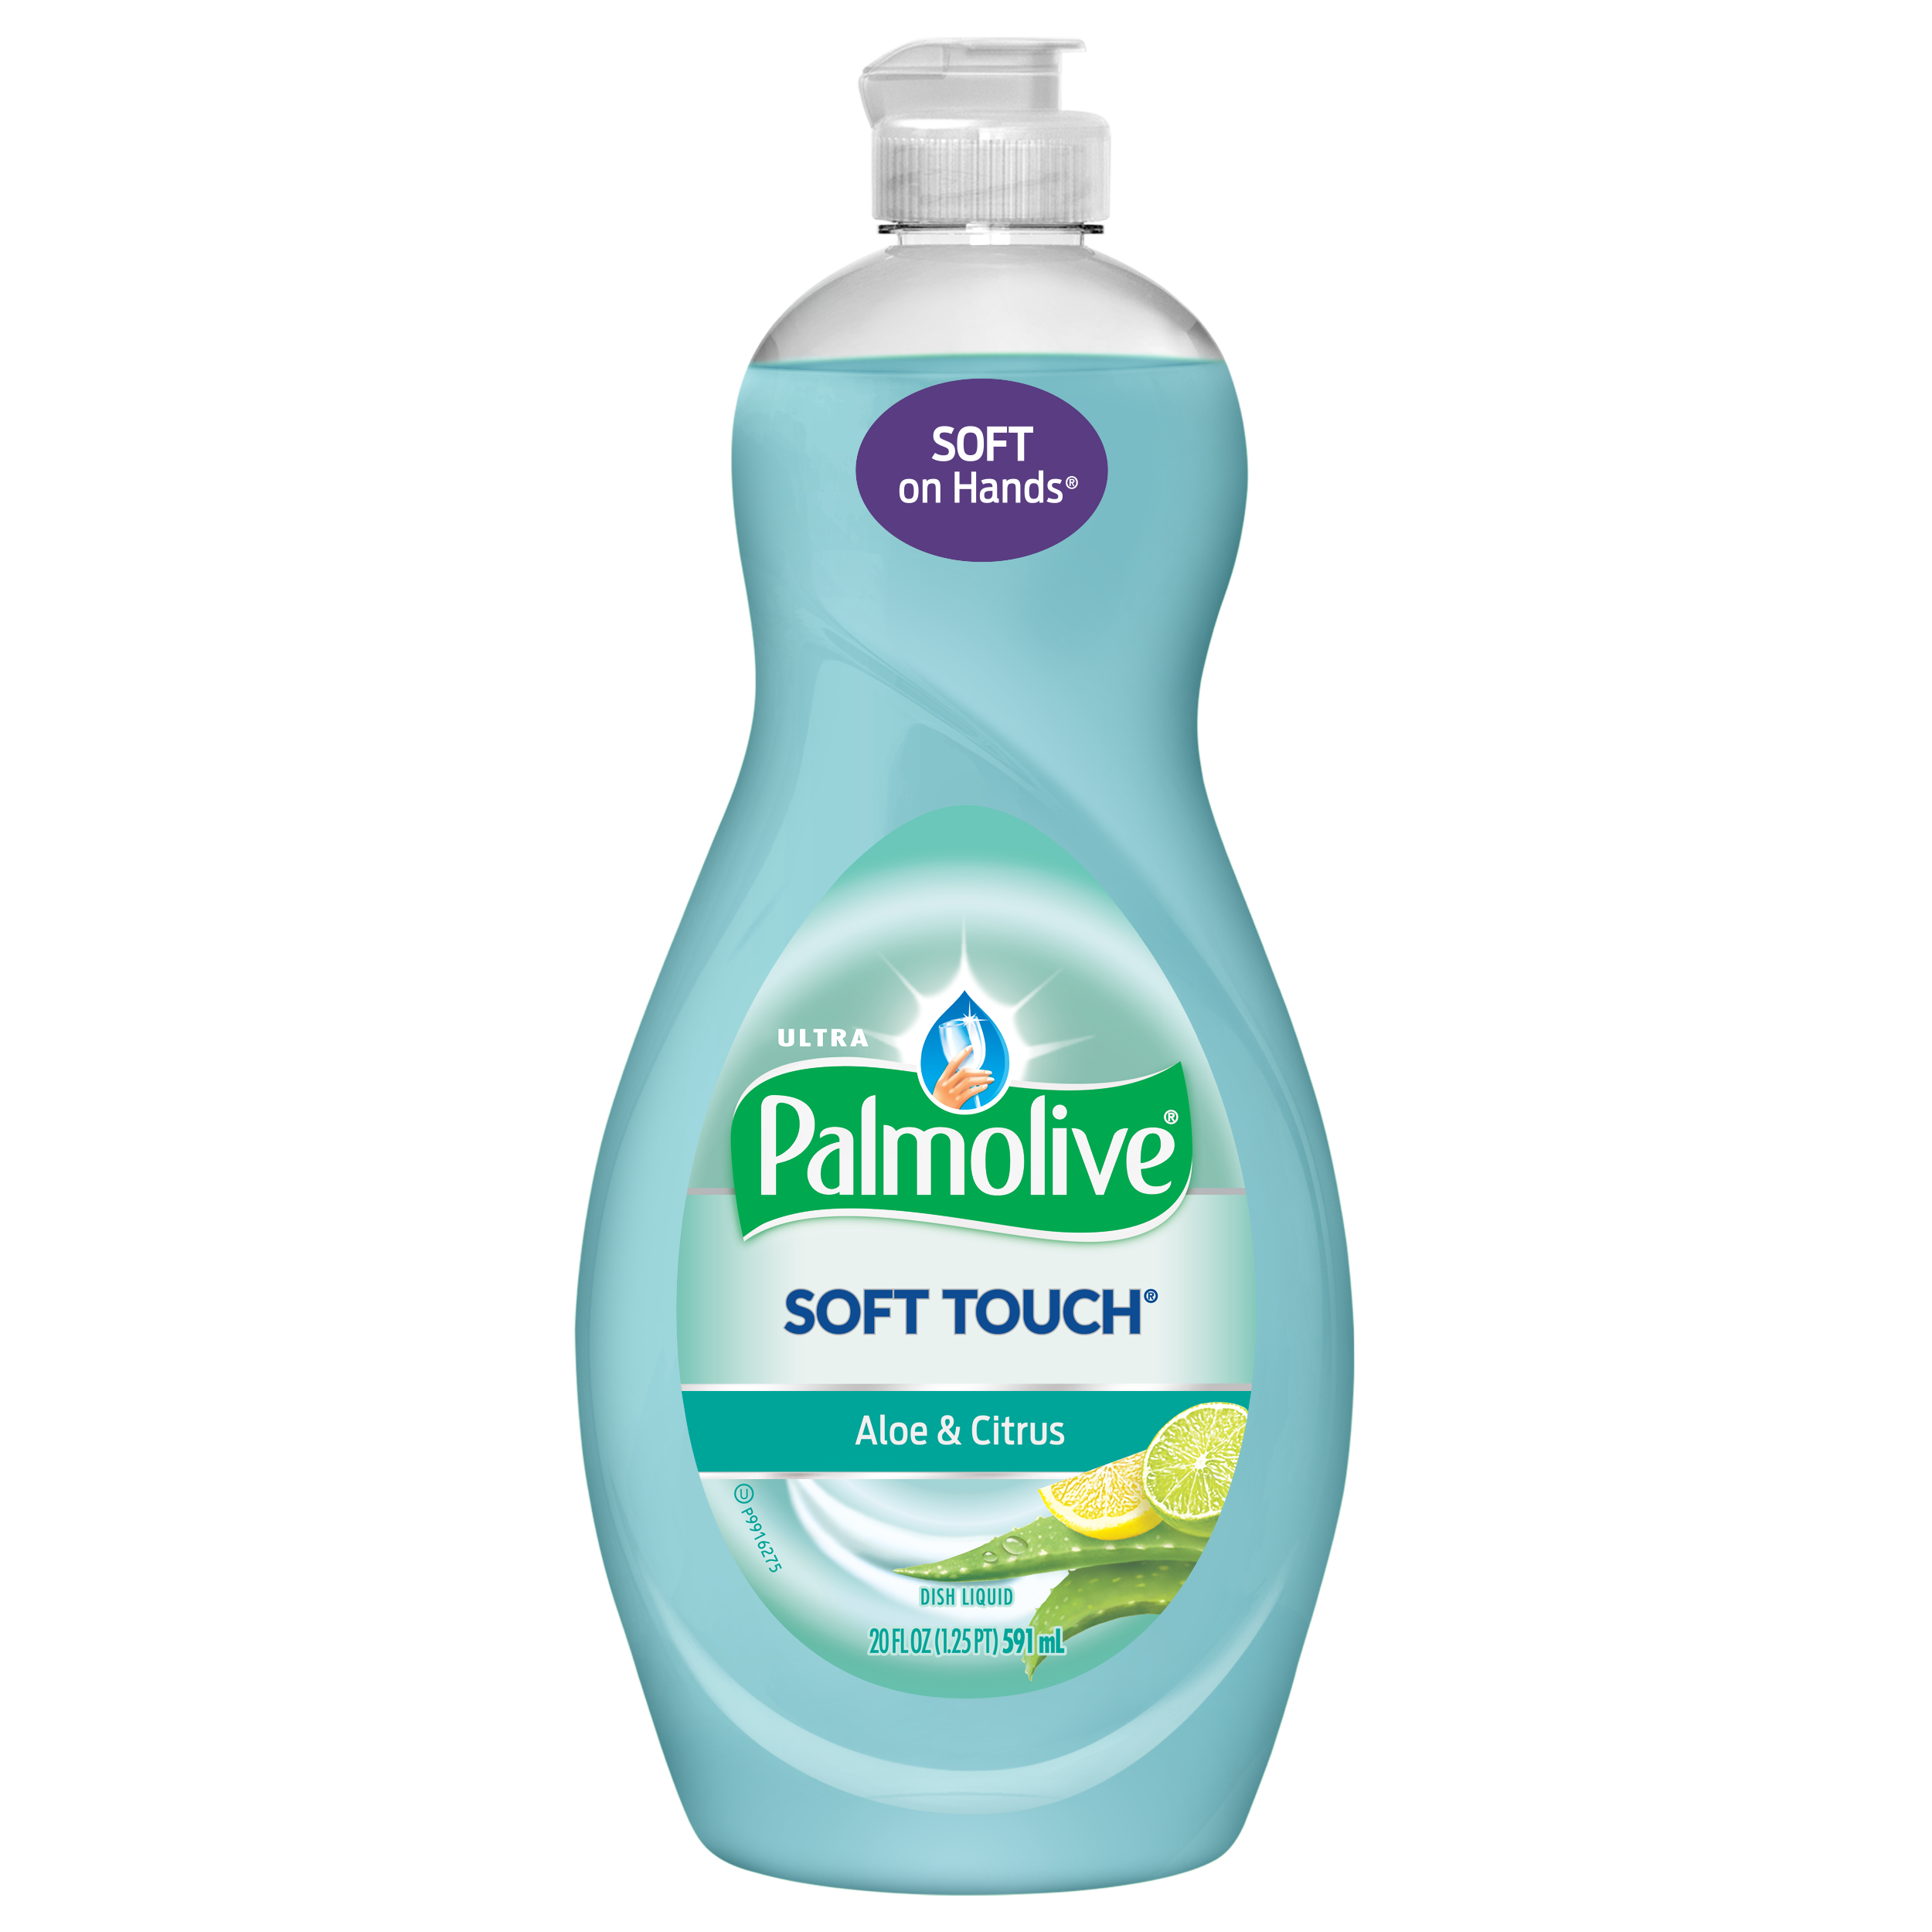 Palmolive Ultra Liquid Dish Soap, Soft Touch Aloe & Citrus - 20 Fluid Ounce